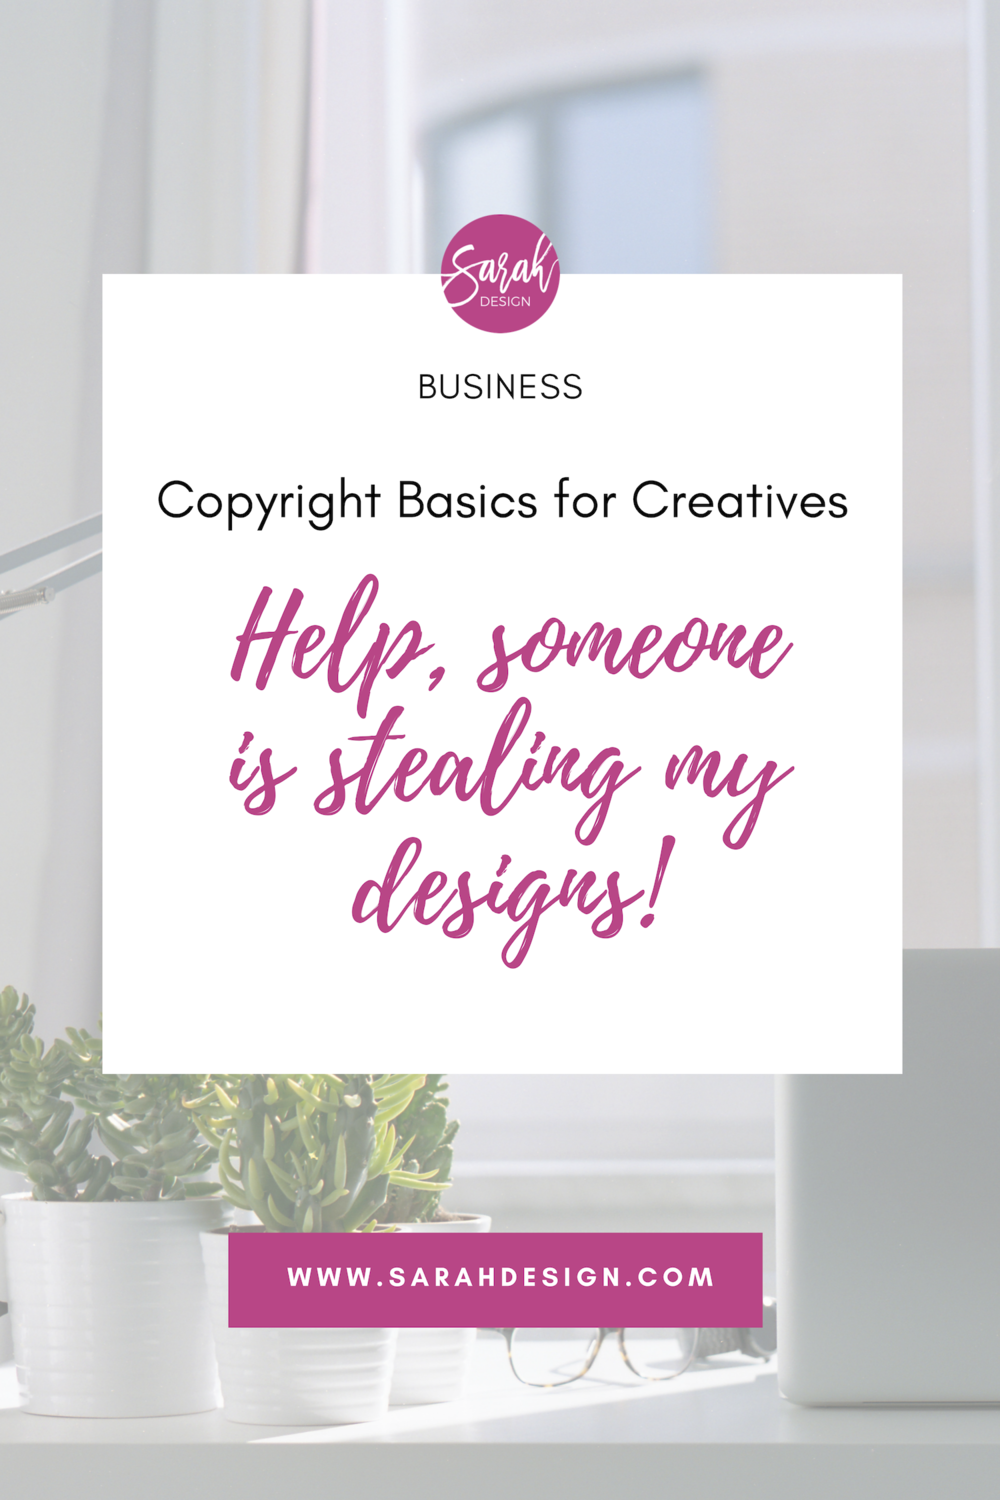 3  Copyright basics for creatives. Guest post from Joey Vitale on SarahDesign.com website.